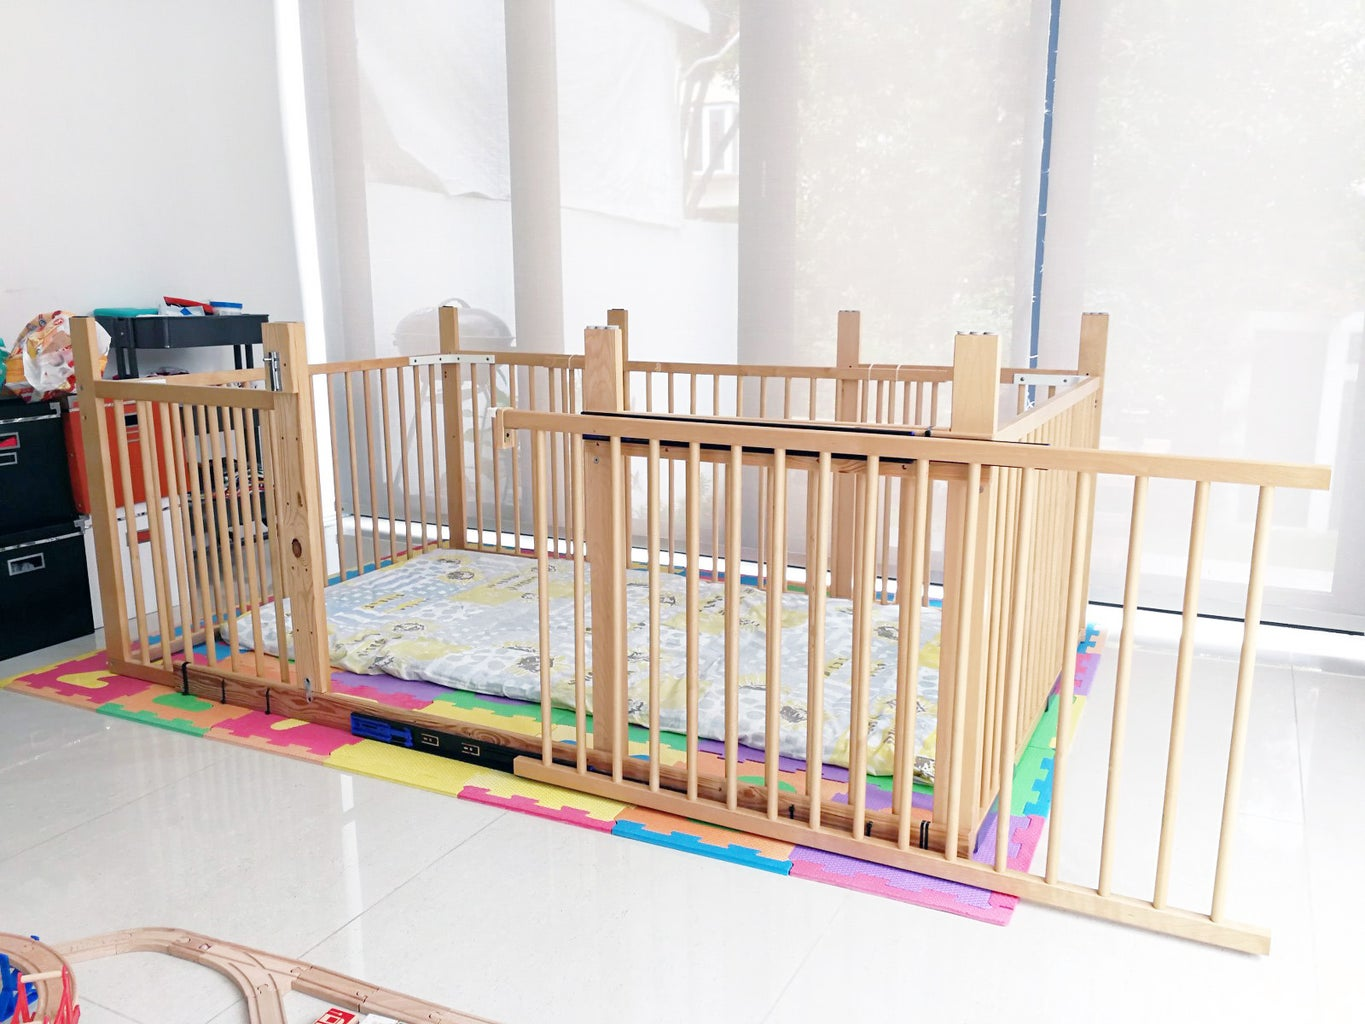 Supersized Toddler Playpen With Sliding Gate Out of Old IKEA Cots